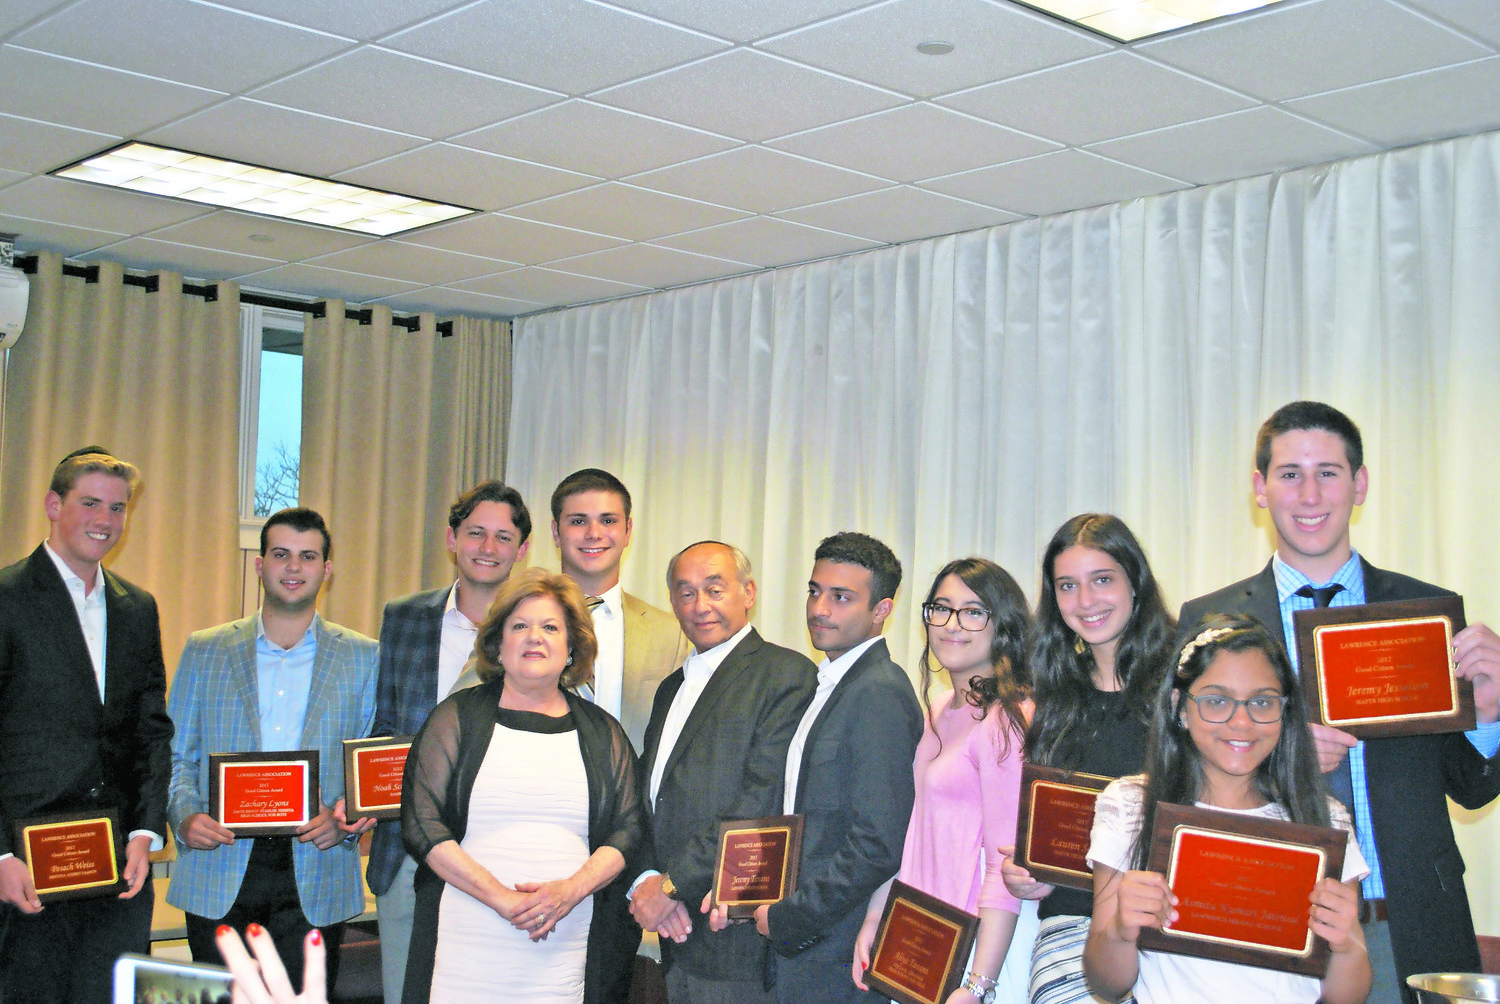 The Lawrence Association, recognized Five Towns students last June with citizenship awards. From left were Pesach Weiss, Zachary Lyons, Noah Schwartz, Past President Sharon Douglas, Donny Moskovits, Lawrence Mayor Alex Edelman, Jeremy Tanami, Aliya Tanami, Lauren Safran, Asmita Kumari Jaiswal and Jeremy Jesselson.